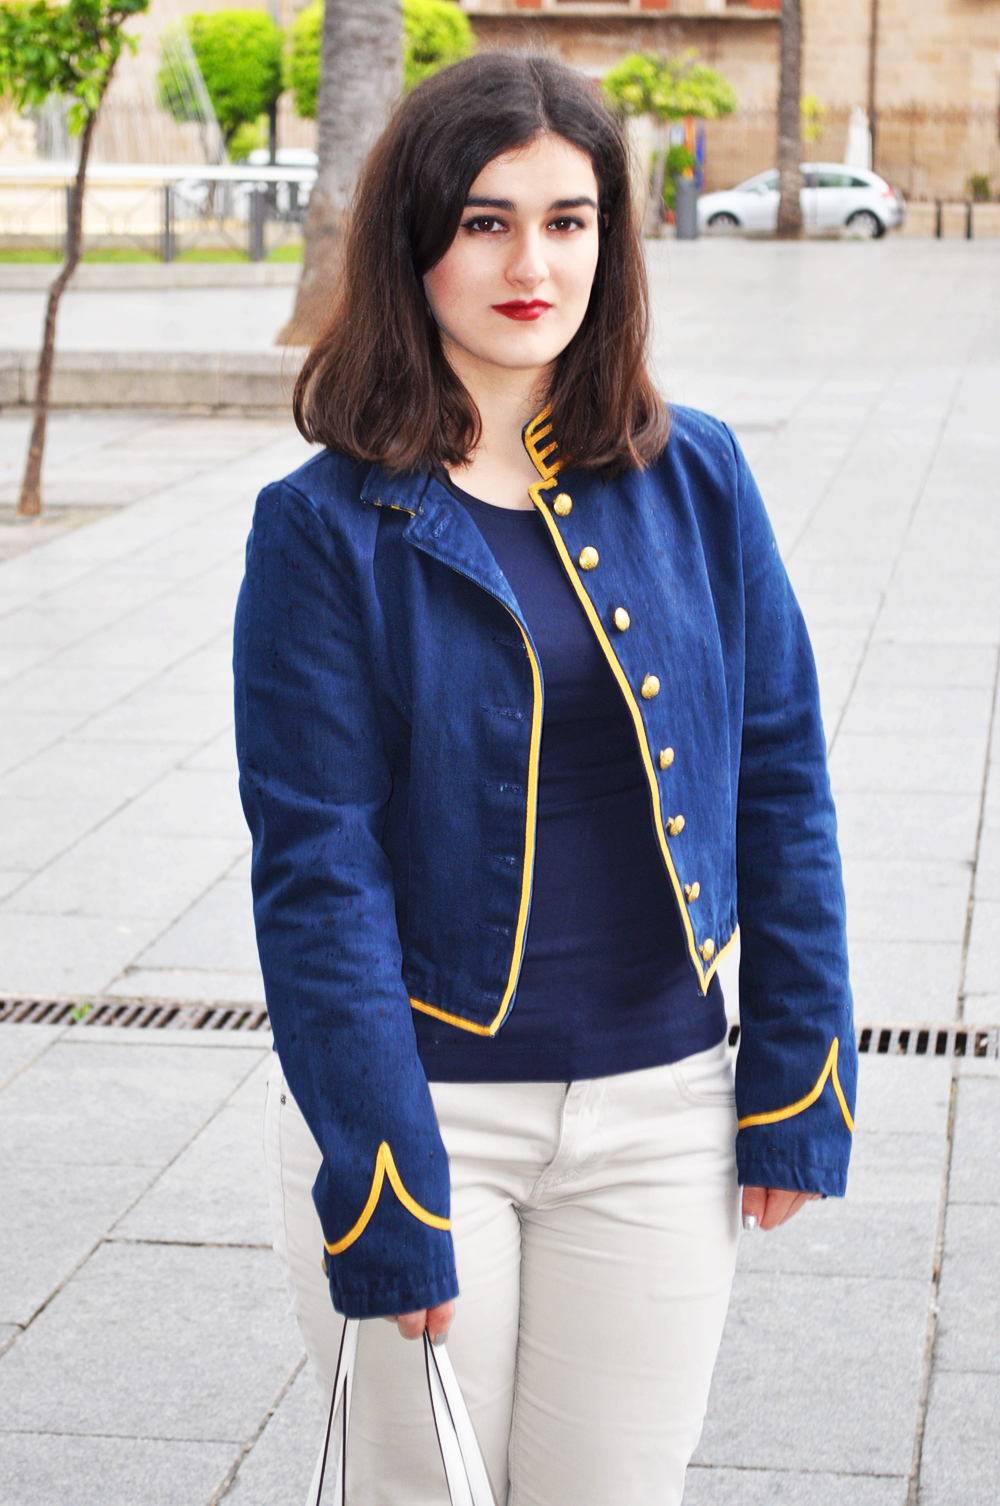 something fashion blogger, fashion blogger valencia spain, merida extremadura bloggers, ralph lauren denim jacket, vintage inspired outfit, trip traveling around spain, templo de diana, short hair brunette blogger, michael kors white bag, traveling ideas